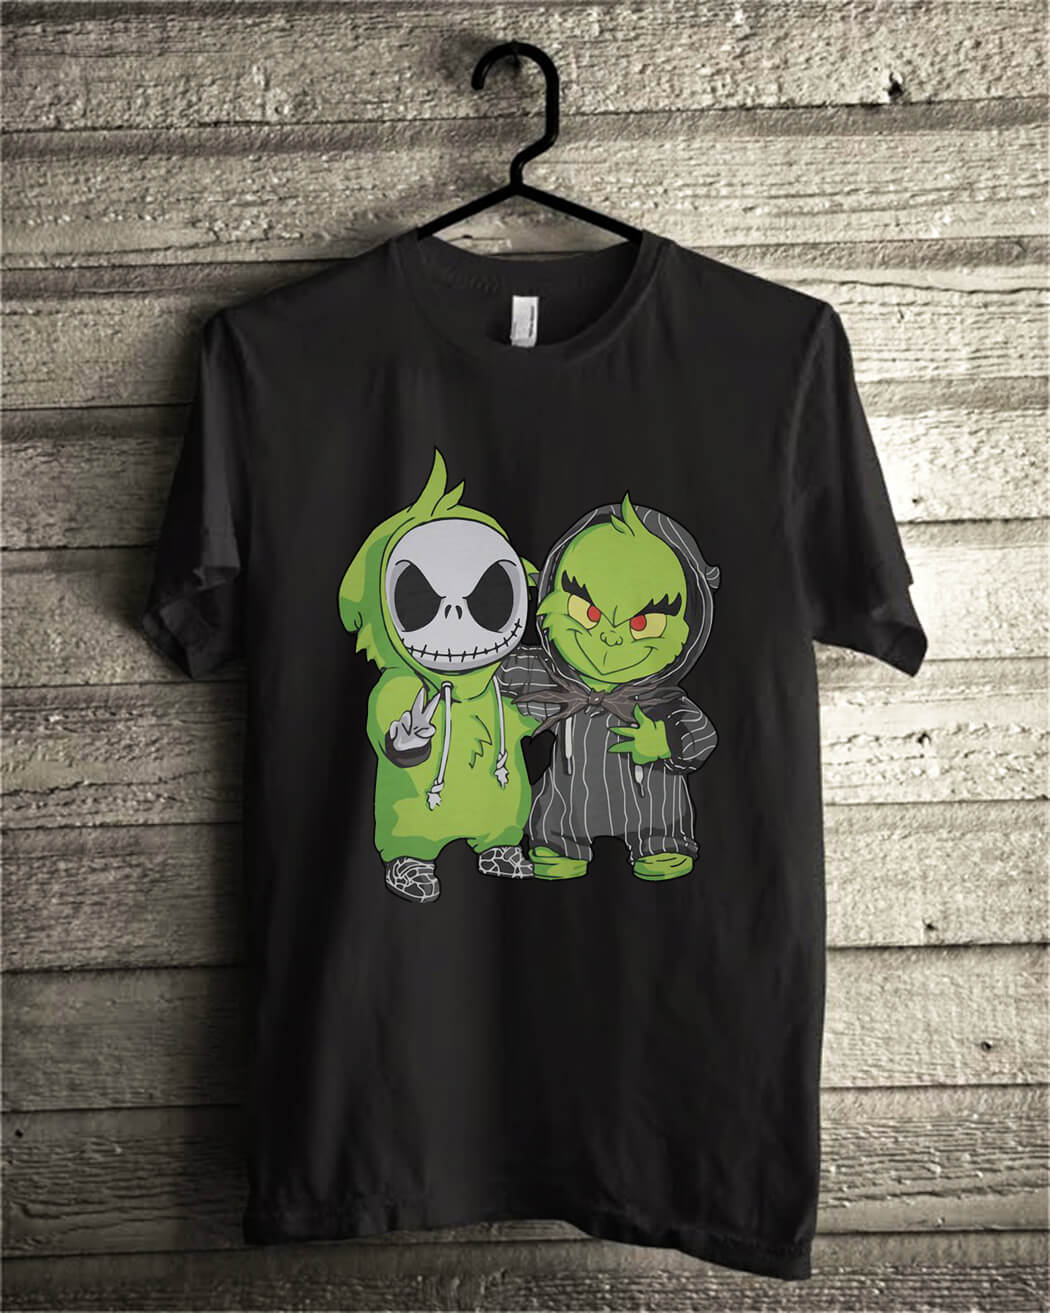 Grinch and Jack Skellington shirt